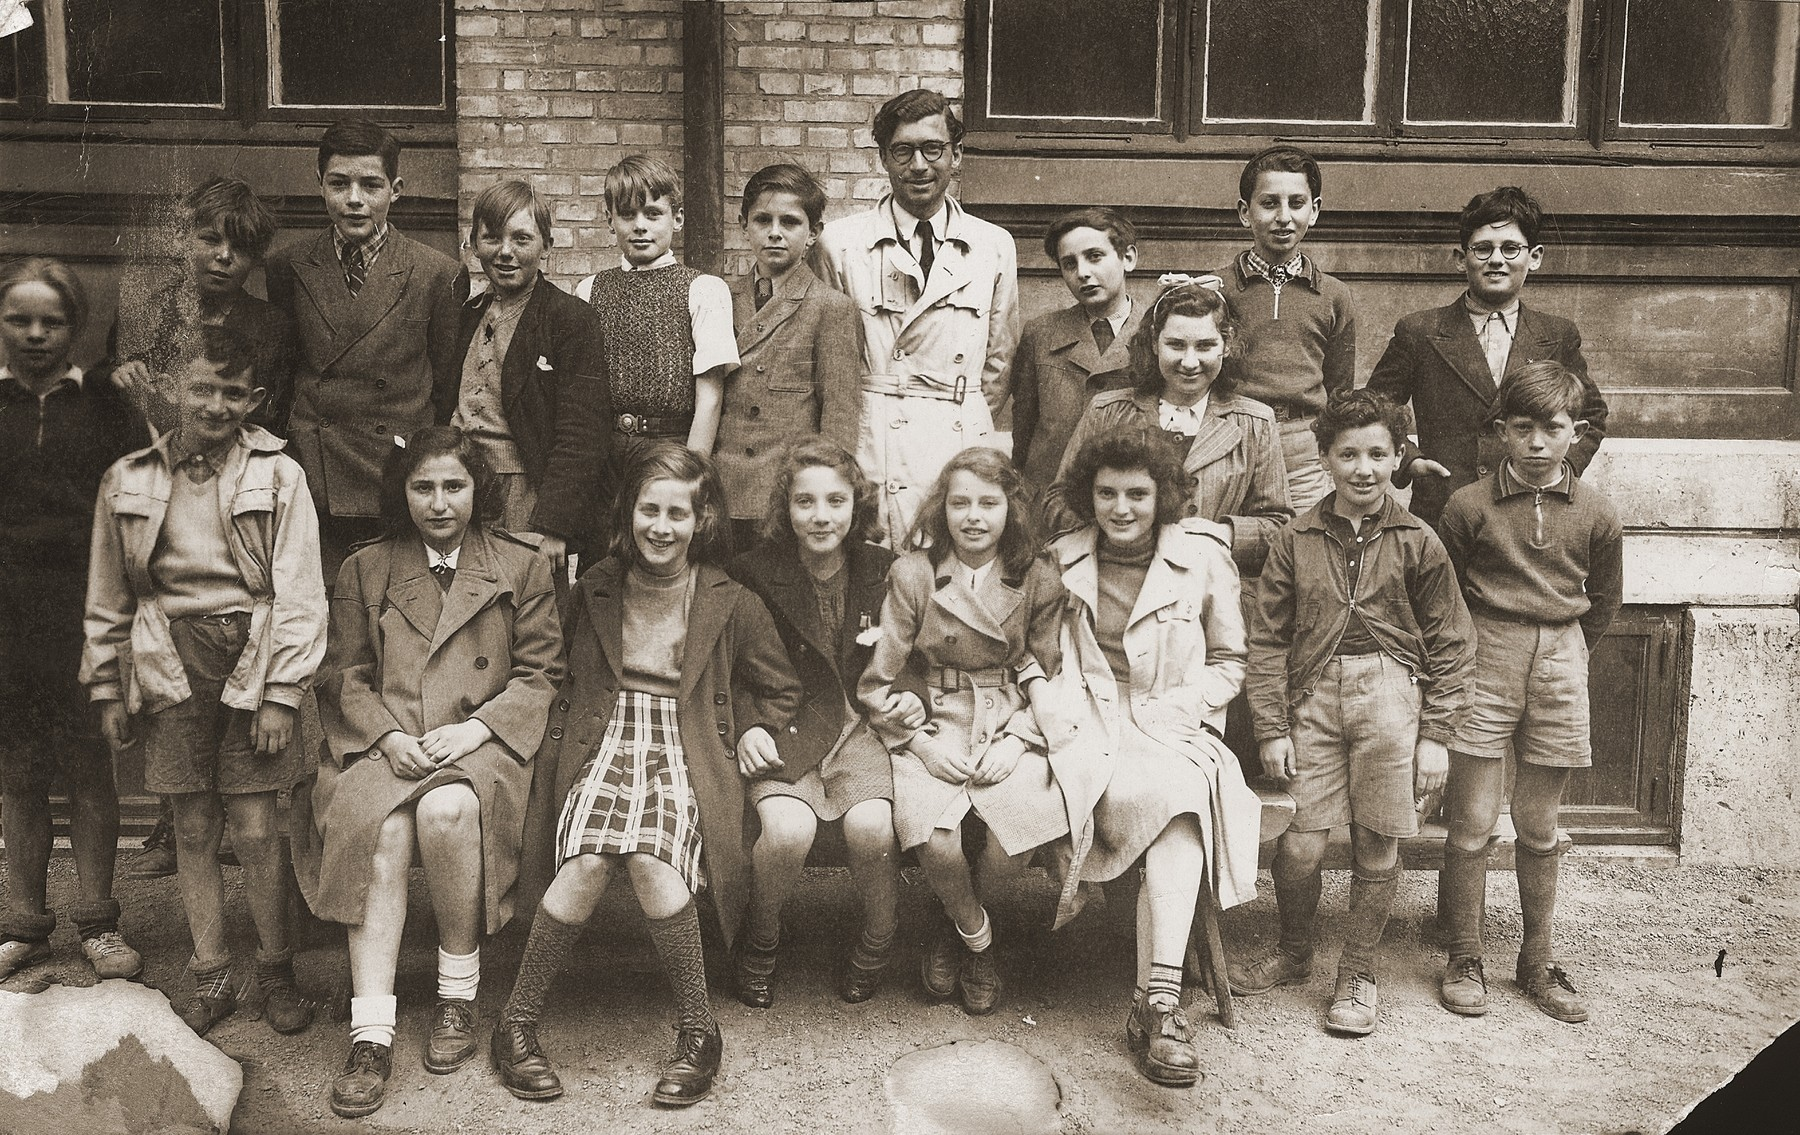 Students and teachers in a school for Danish refugees in Goteborg, Sweden.    The students were both Jewish and non-Jewish children of Danish members of the resistance.  Many of the teachers were themselves refugees.  Seated in the front left is Annie Block and second from the right is Kathe Hanover.  Standing second from the right, front row is Gus Goldberger and second from the right, back row is Leon Elkanowitz.